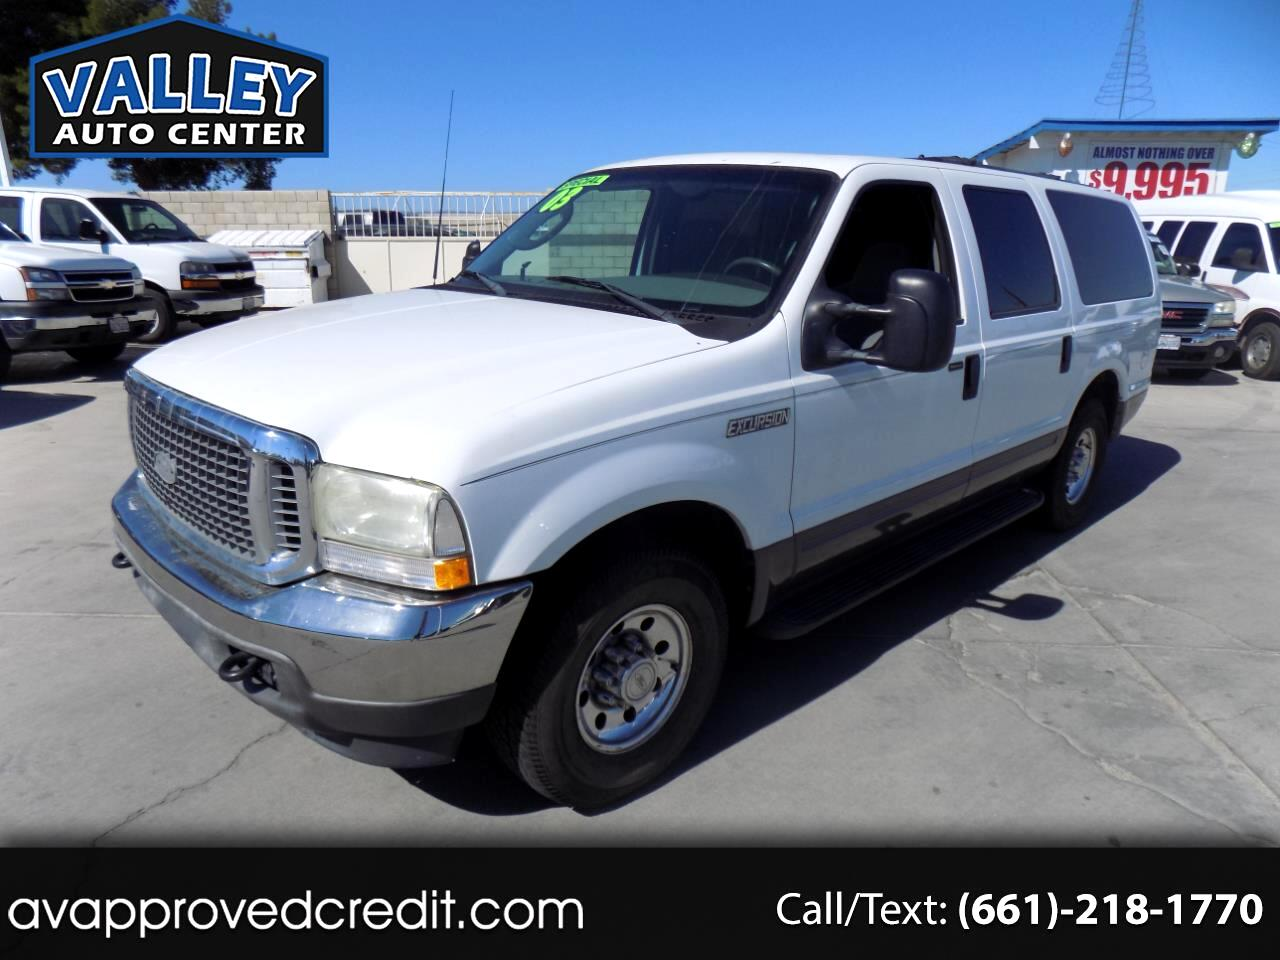 2003 Ford Excursion XLT Value 6.8L 2WD